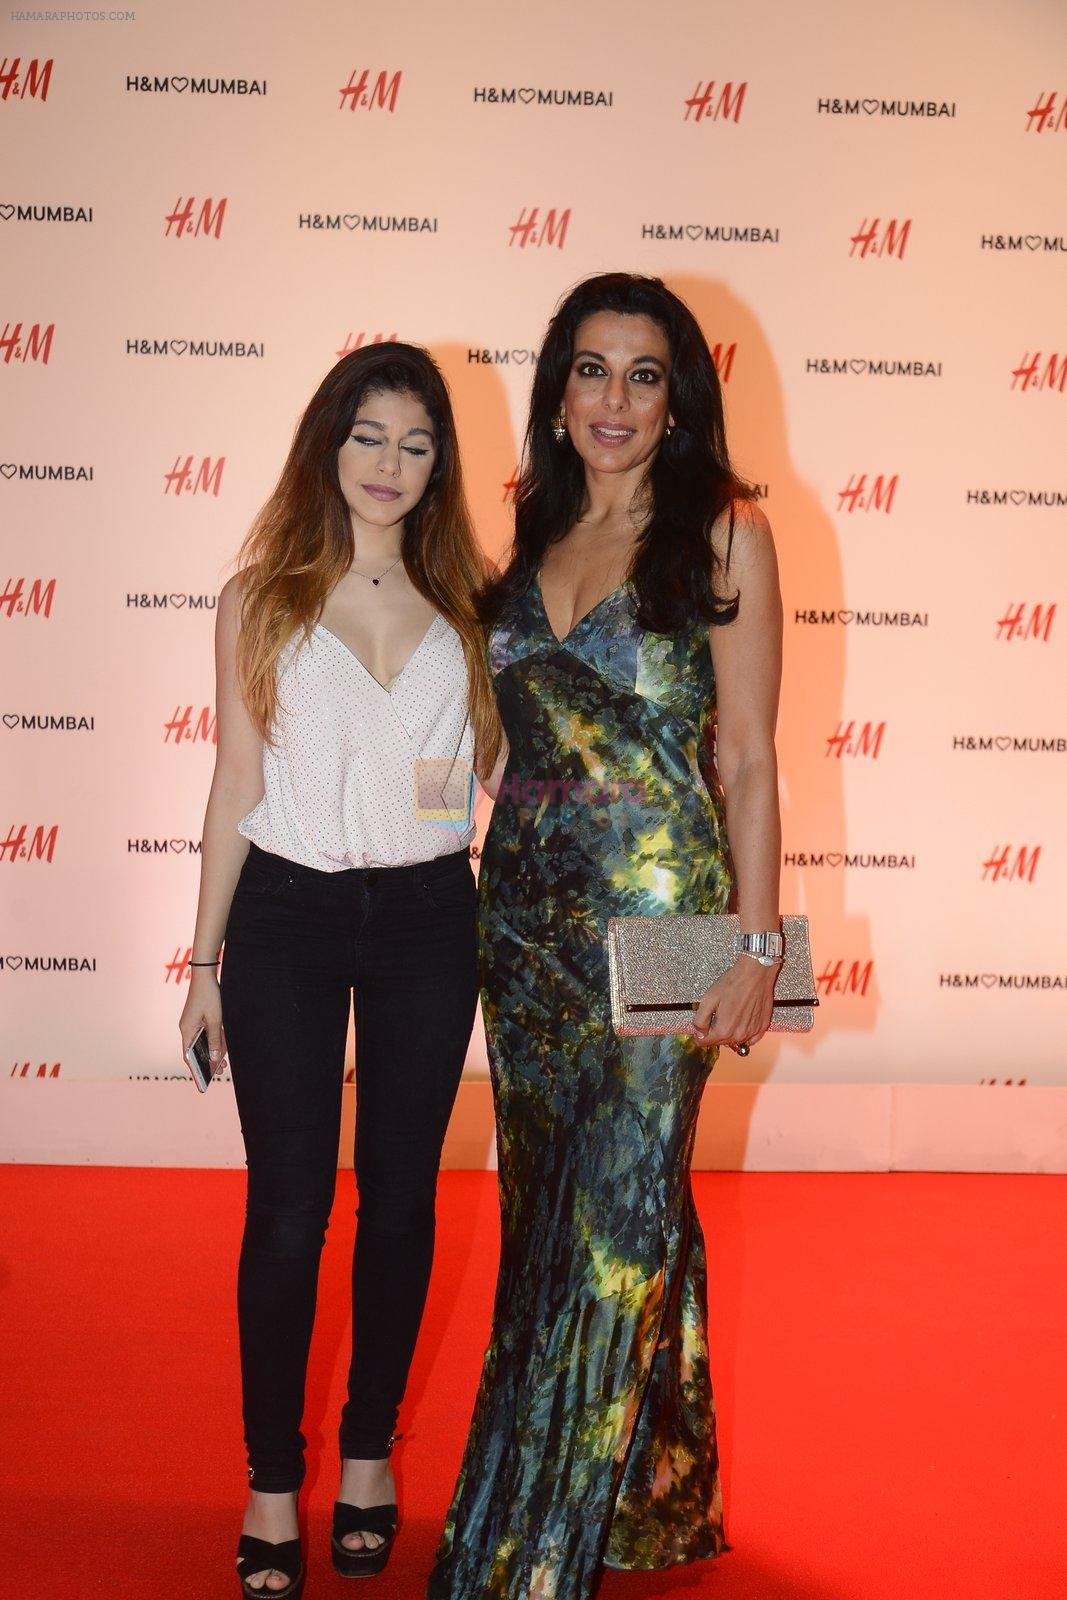 Pooja Bedi at h&m mubai launch on 11th Aug 2016